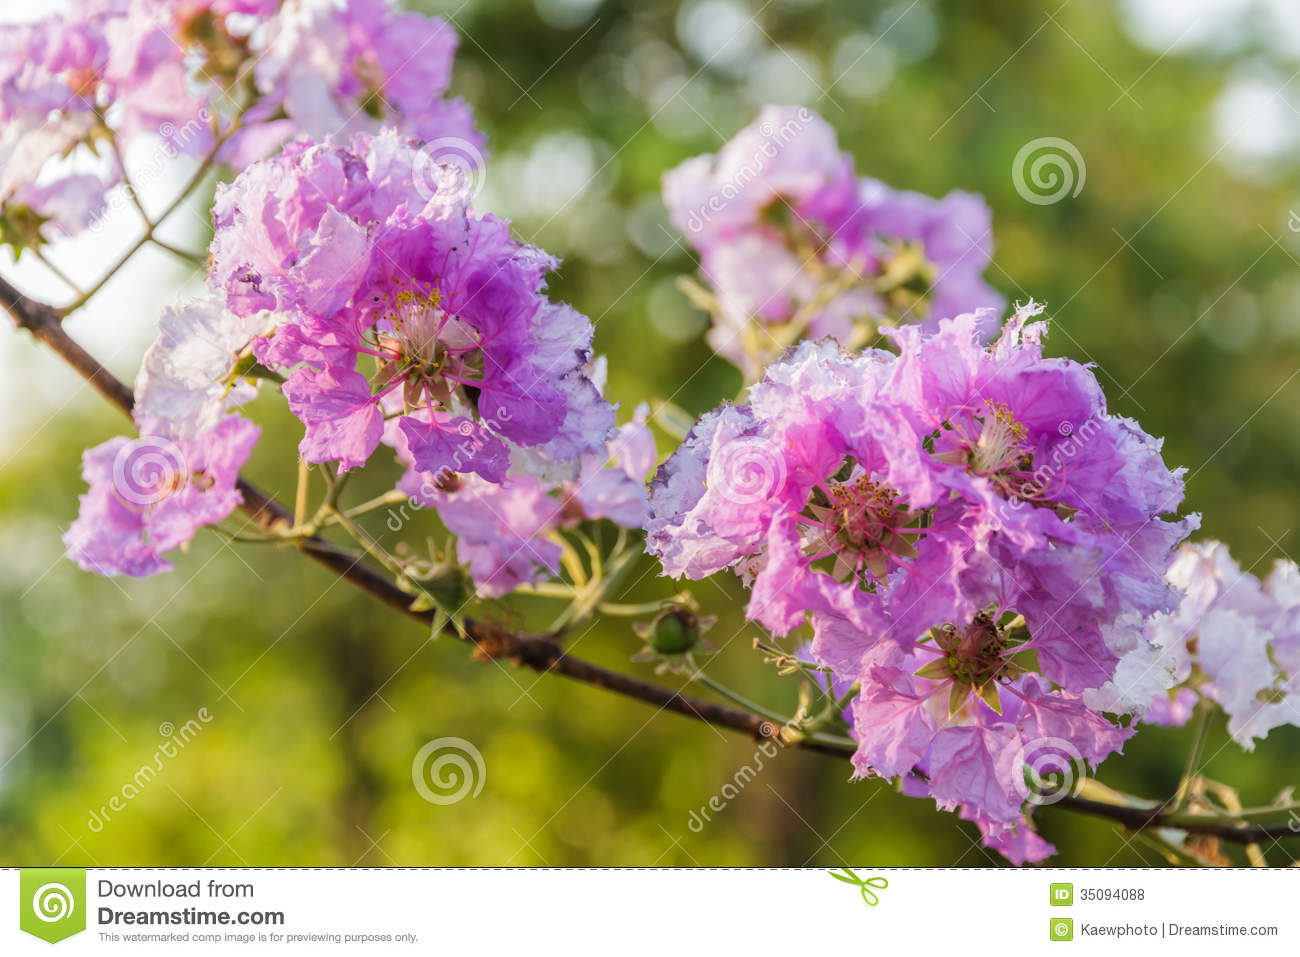 Myrtle Flower Meaning | Flower Meaning